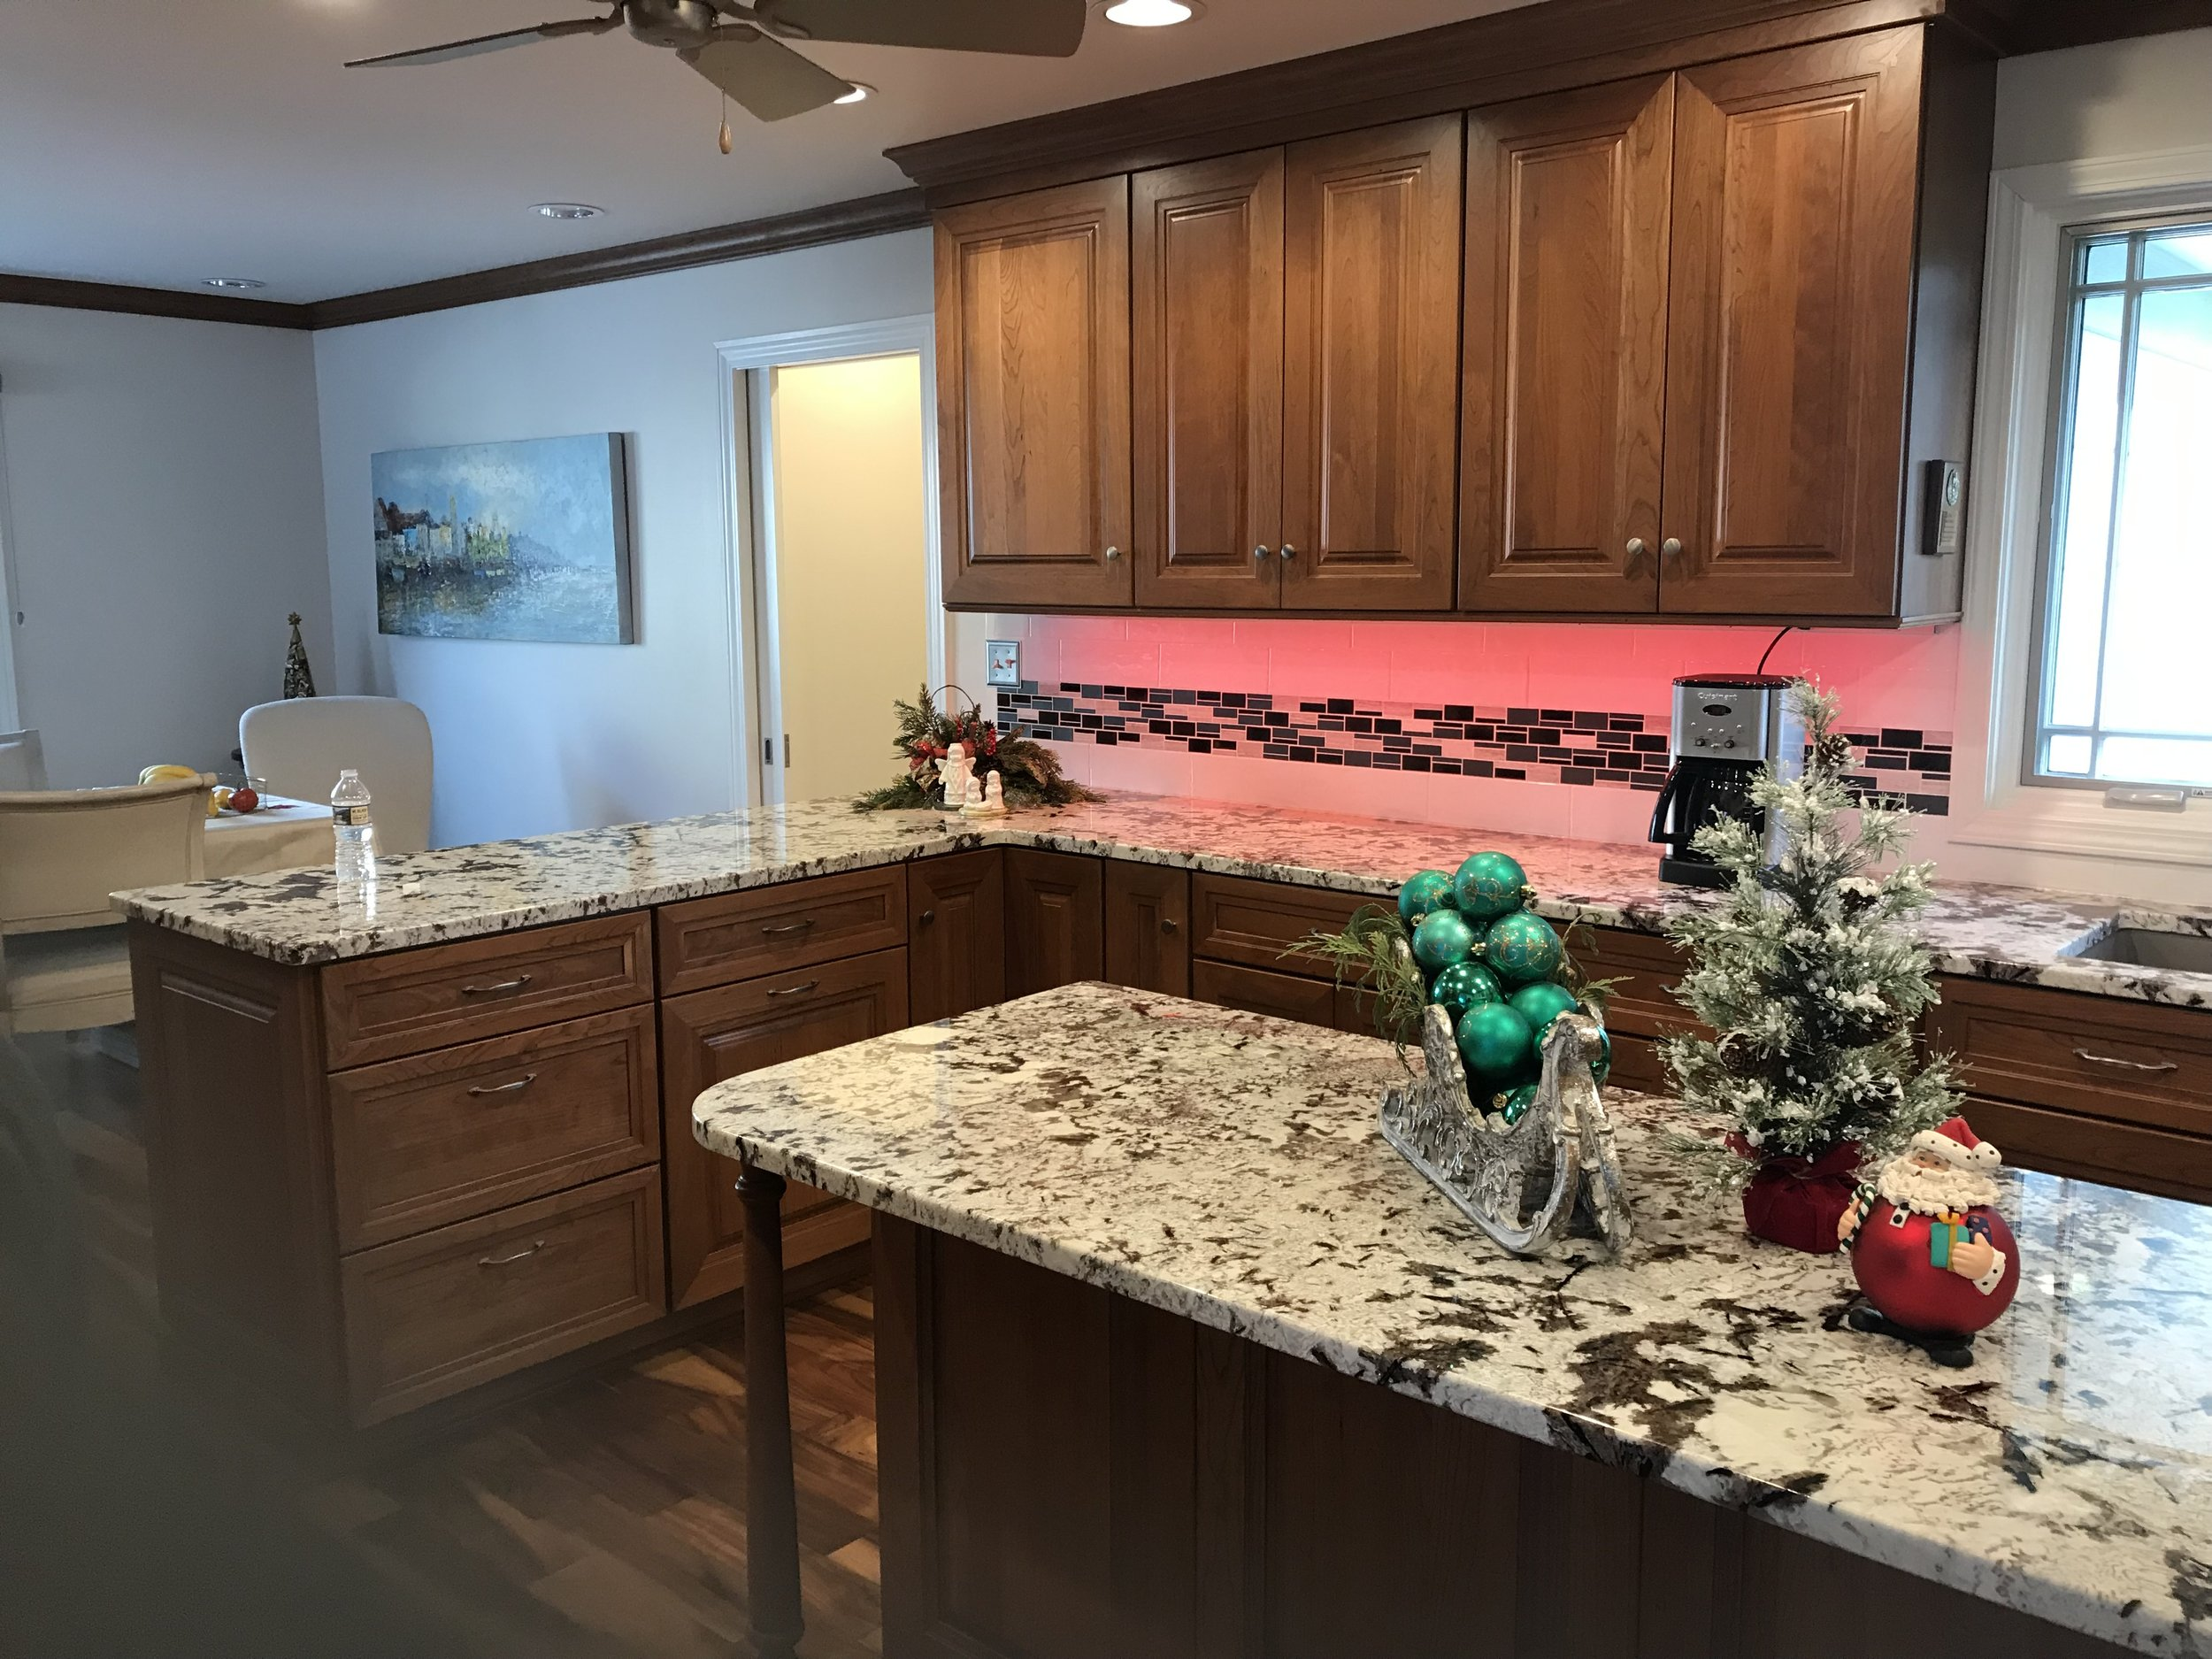 The need for a first floor master suite addition meant another kitchen remodel three years later!  Opening up the kitchen to the dining room gave us room to add an island for more seating and prep space.